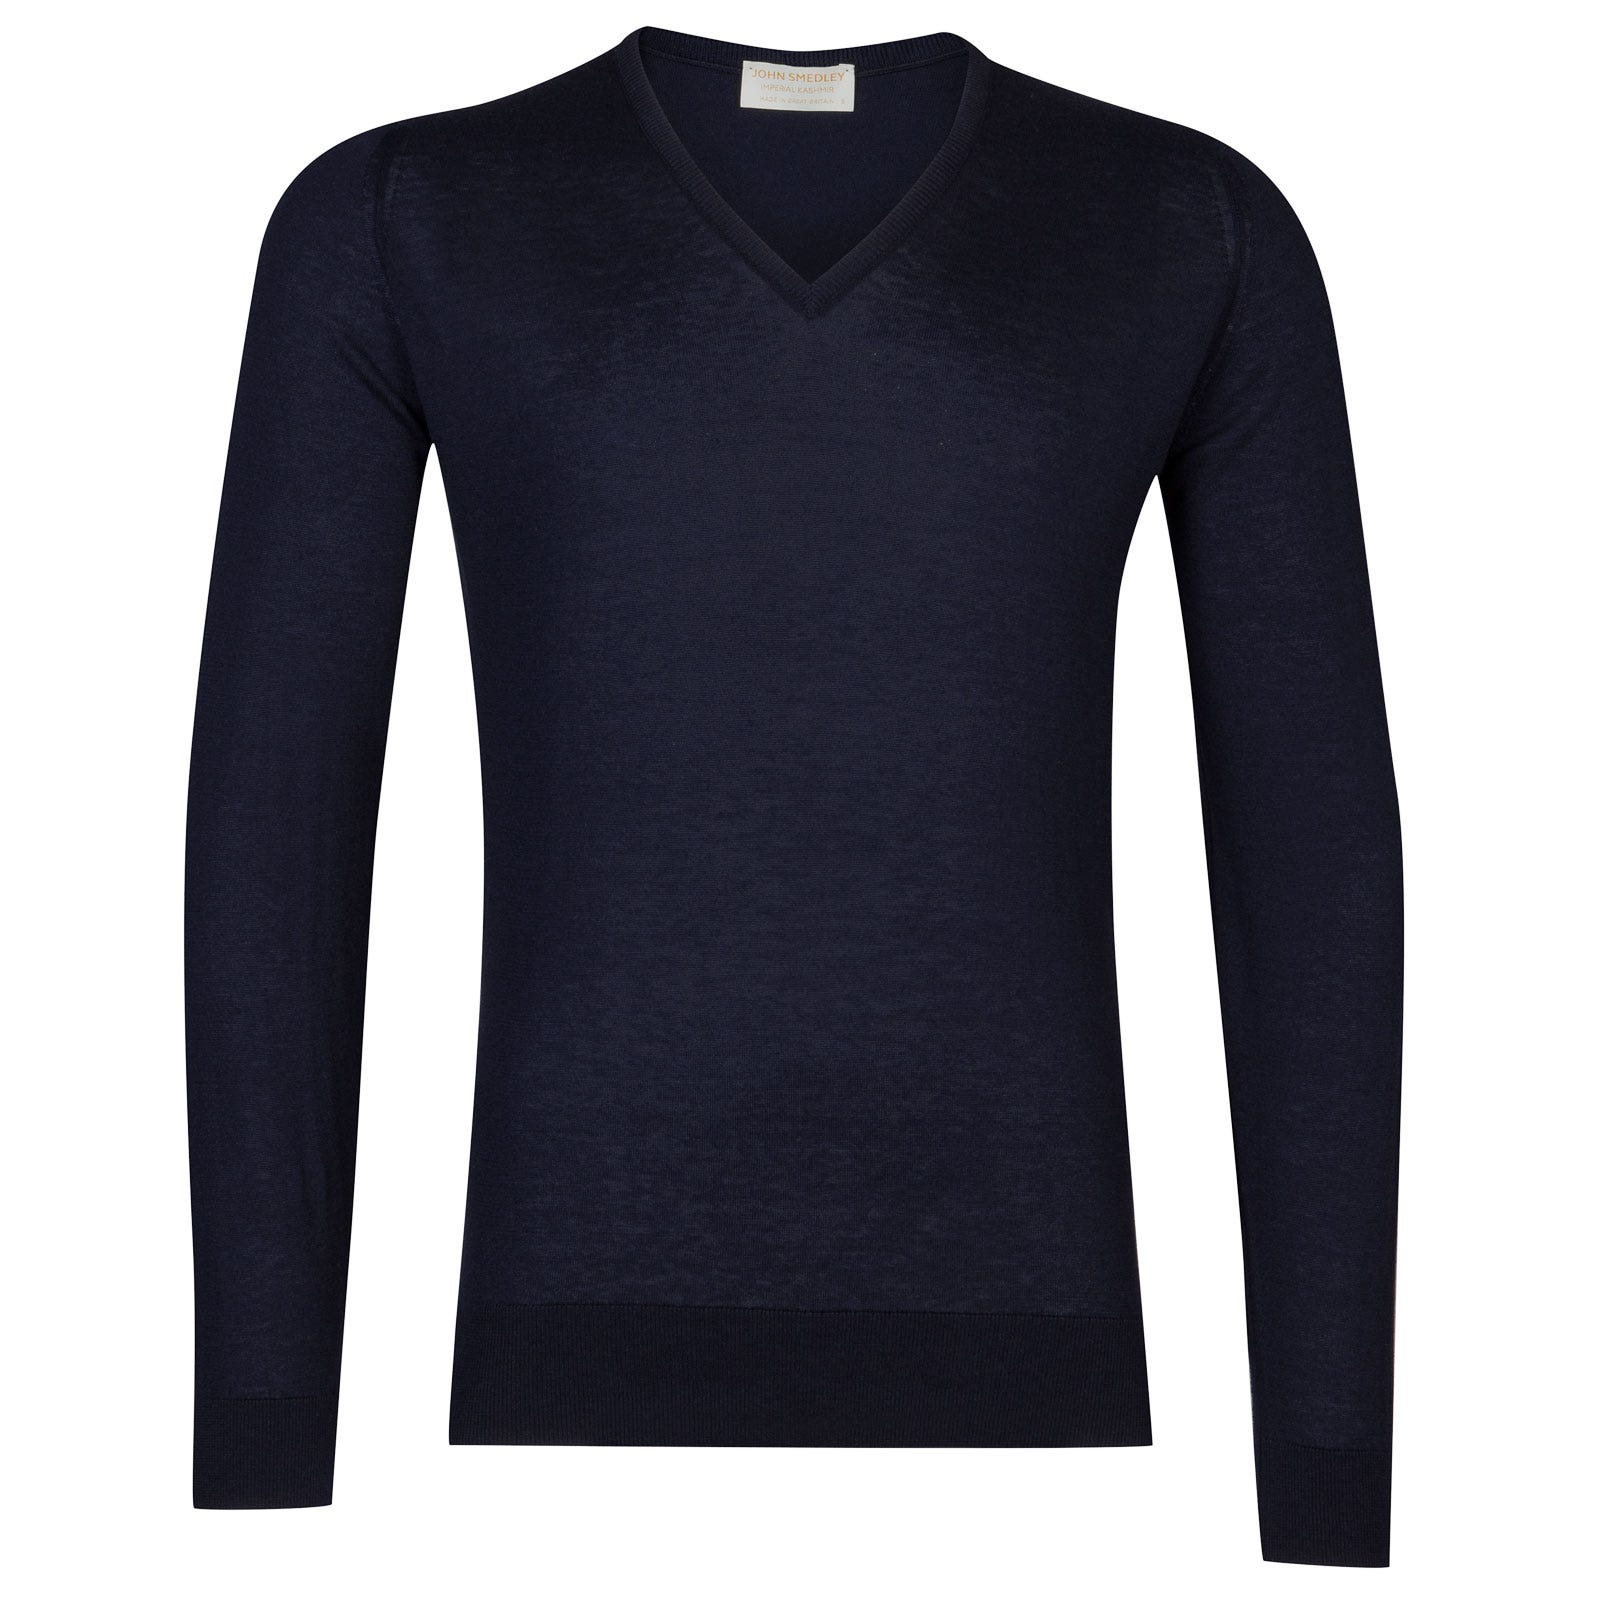 John Smedley Dayton Sea Island Cotton and Cashmere Pullover in Navy-L